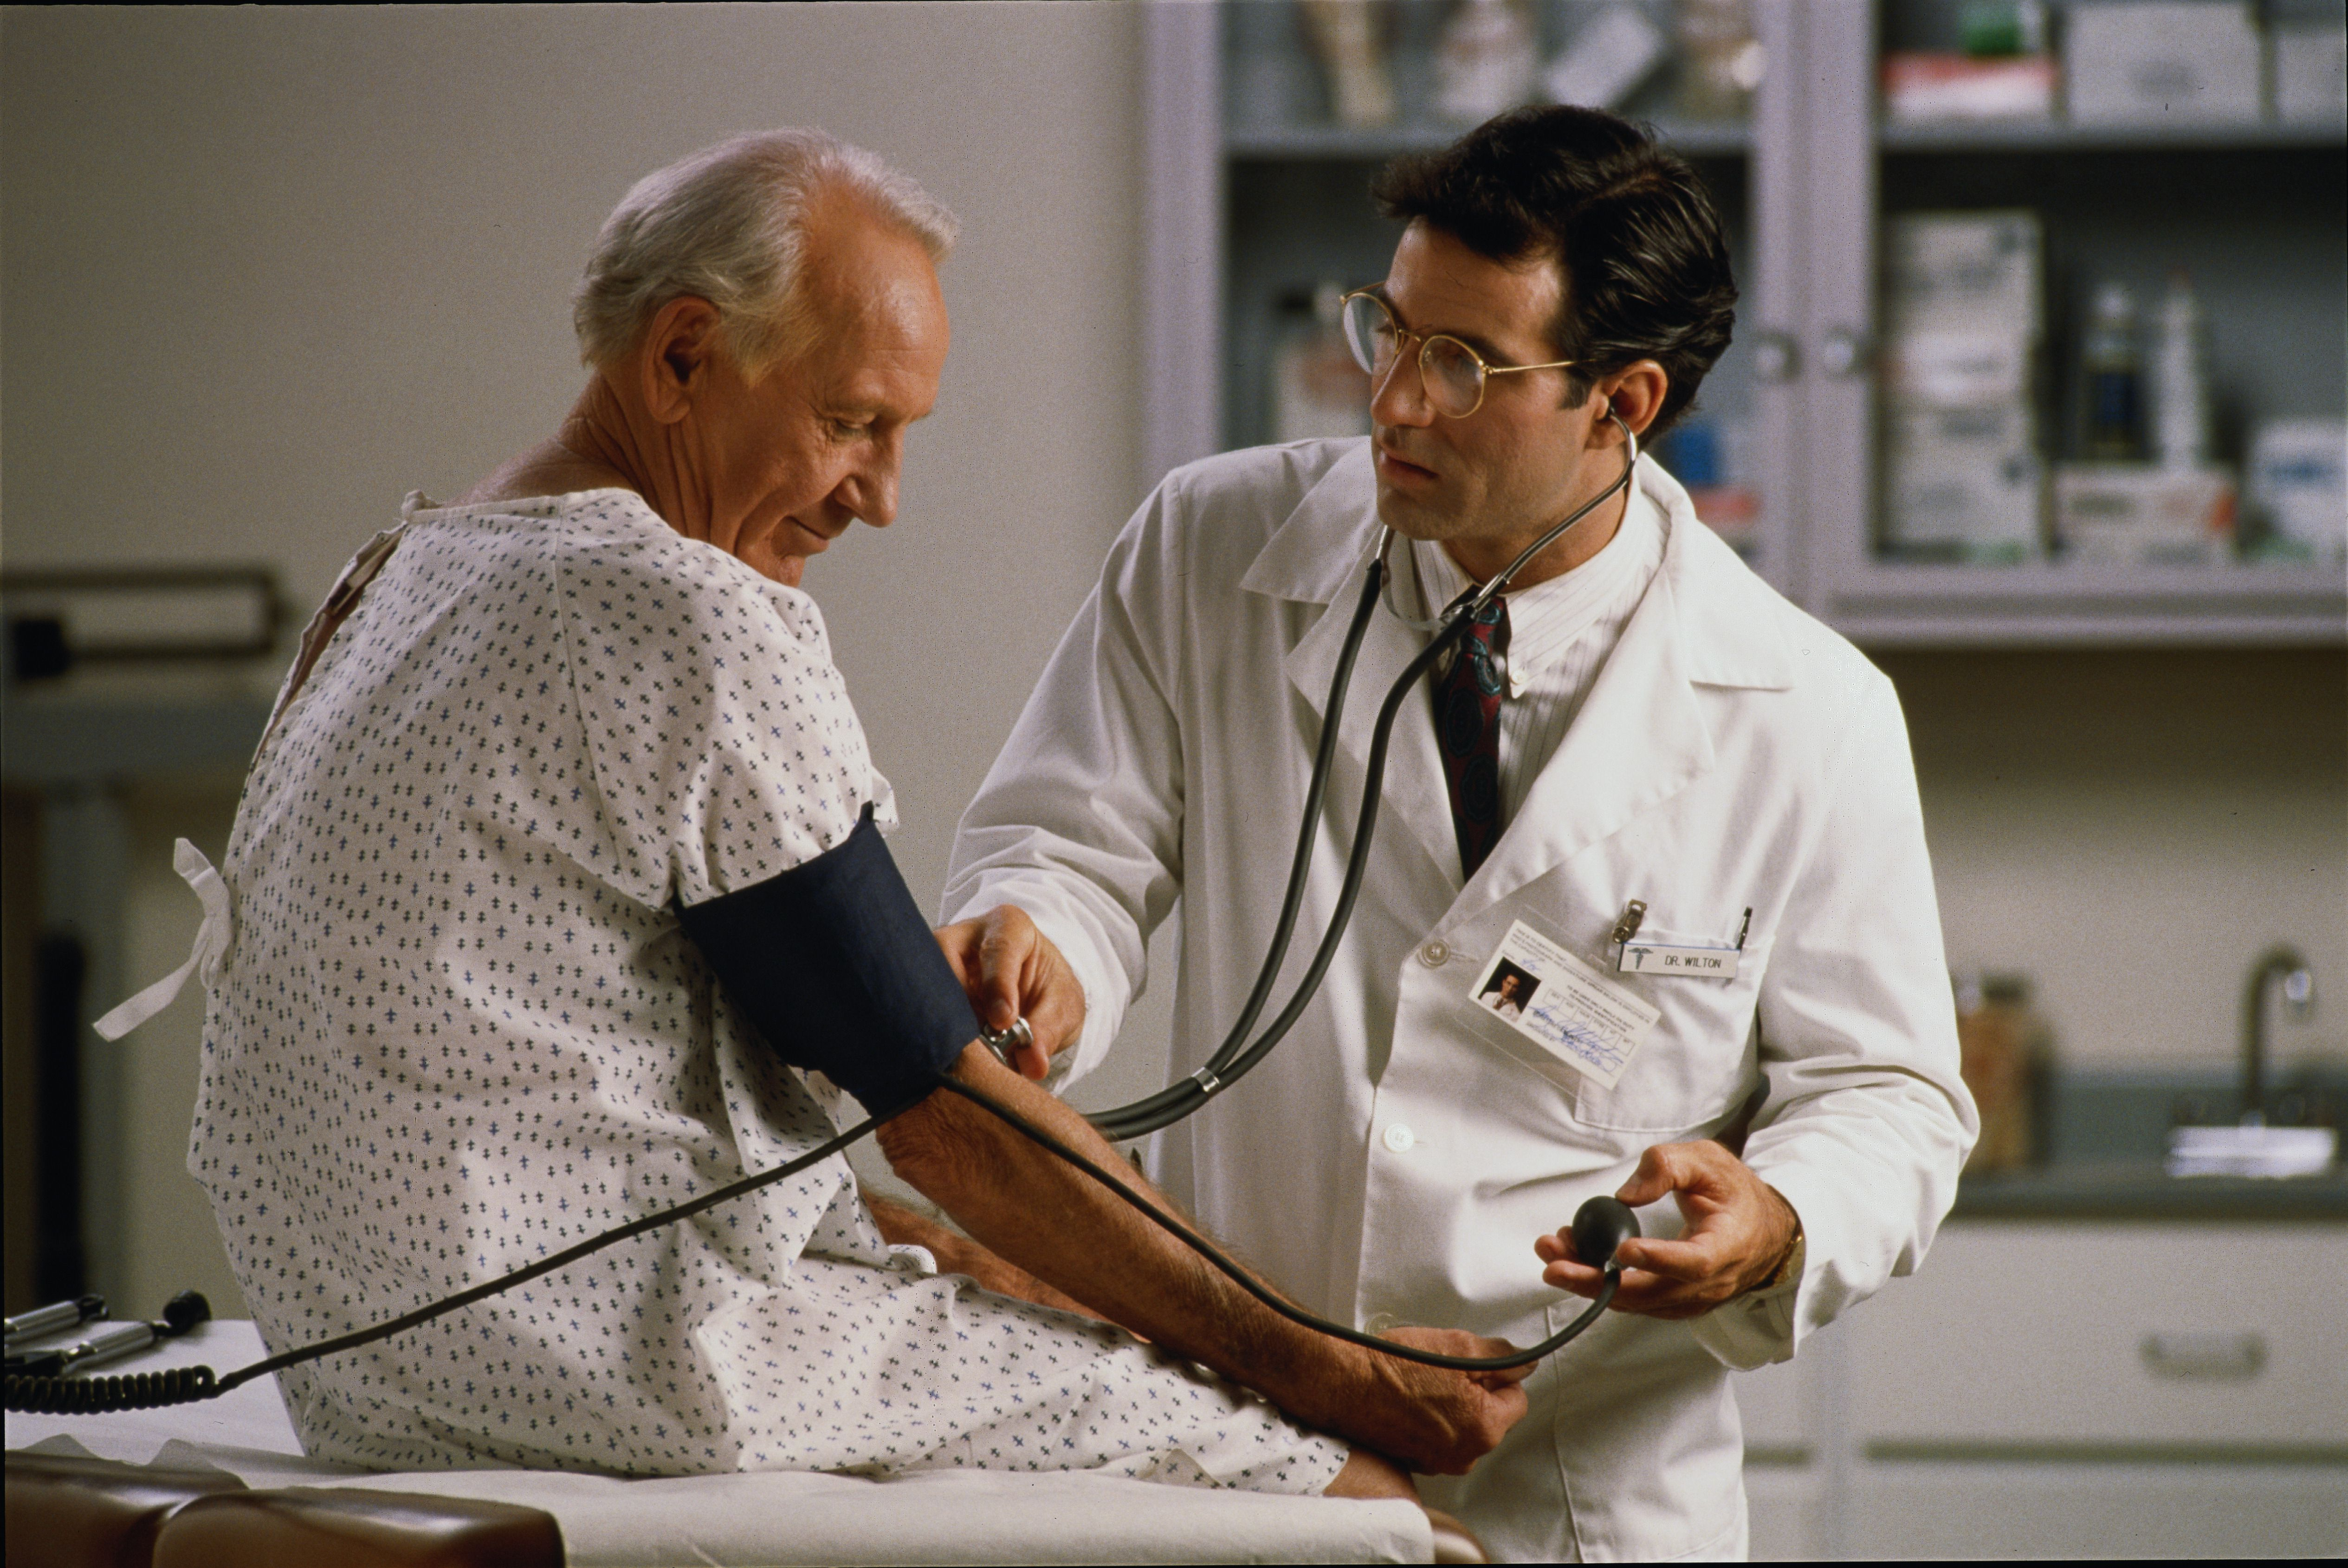 Doctor and patient - blood pressure